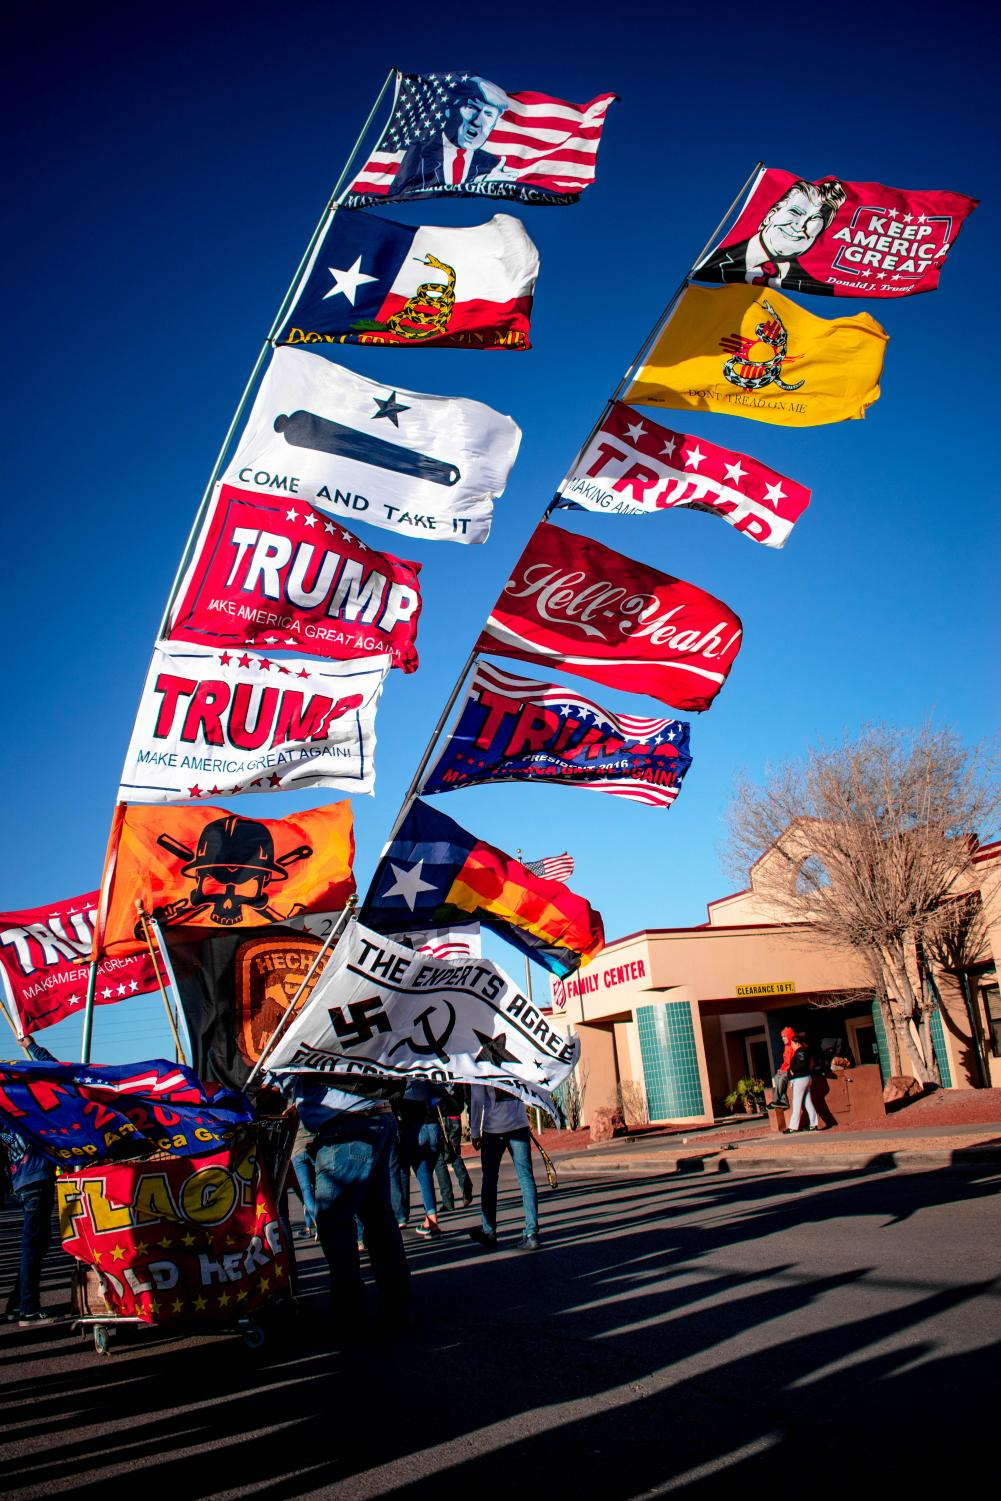 Our+view+of+Mondays+political+madness+in+El+Paso